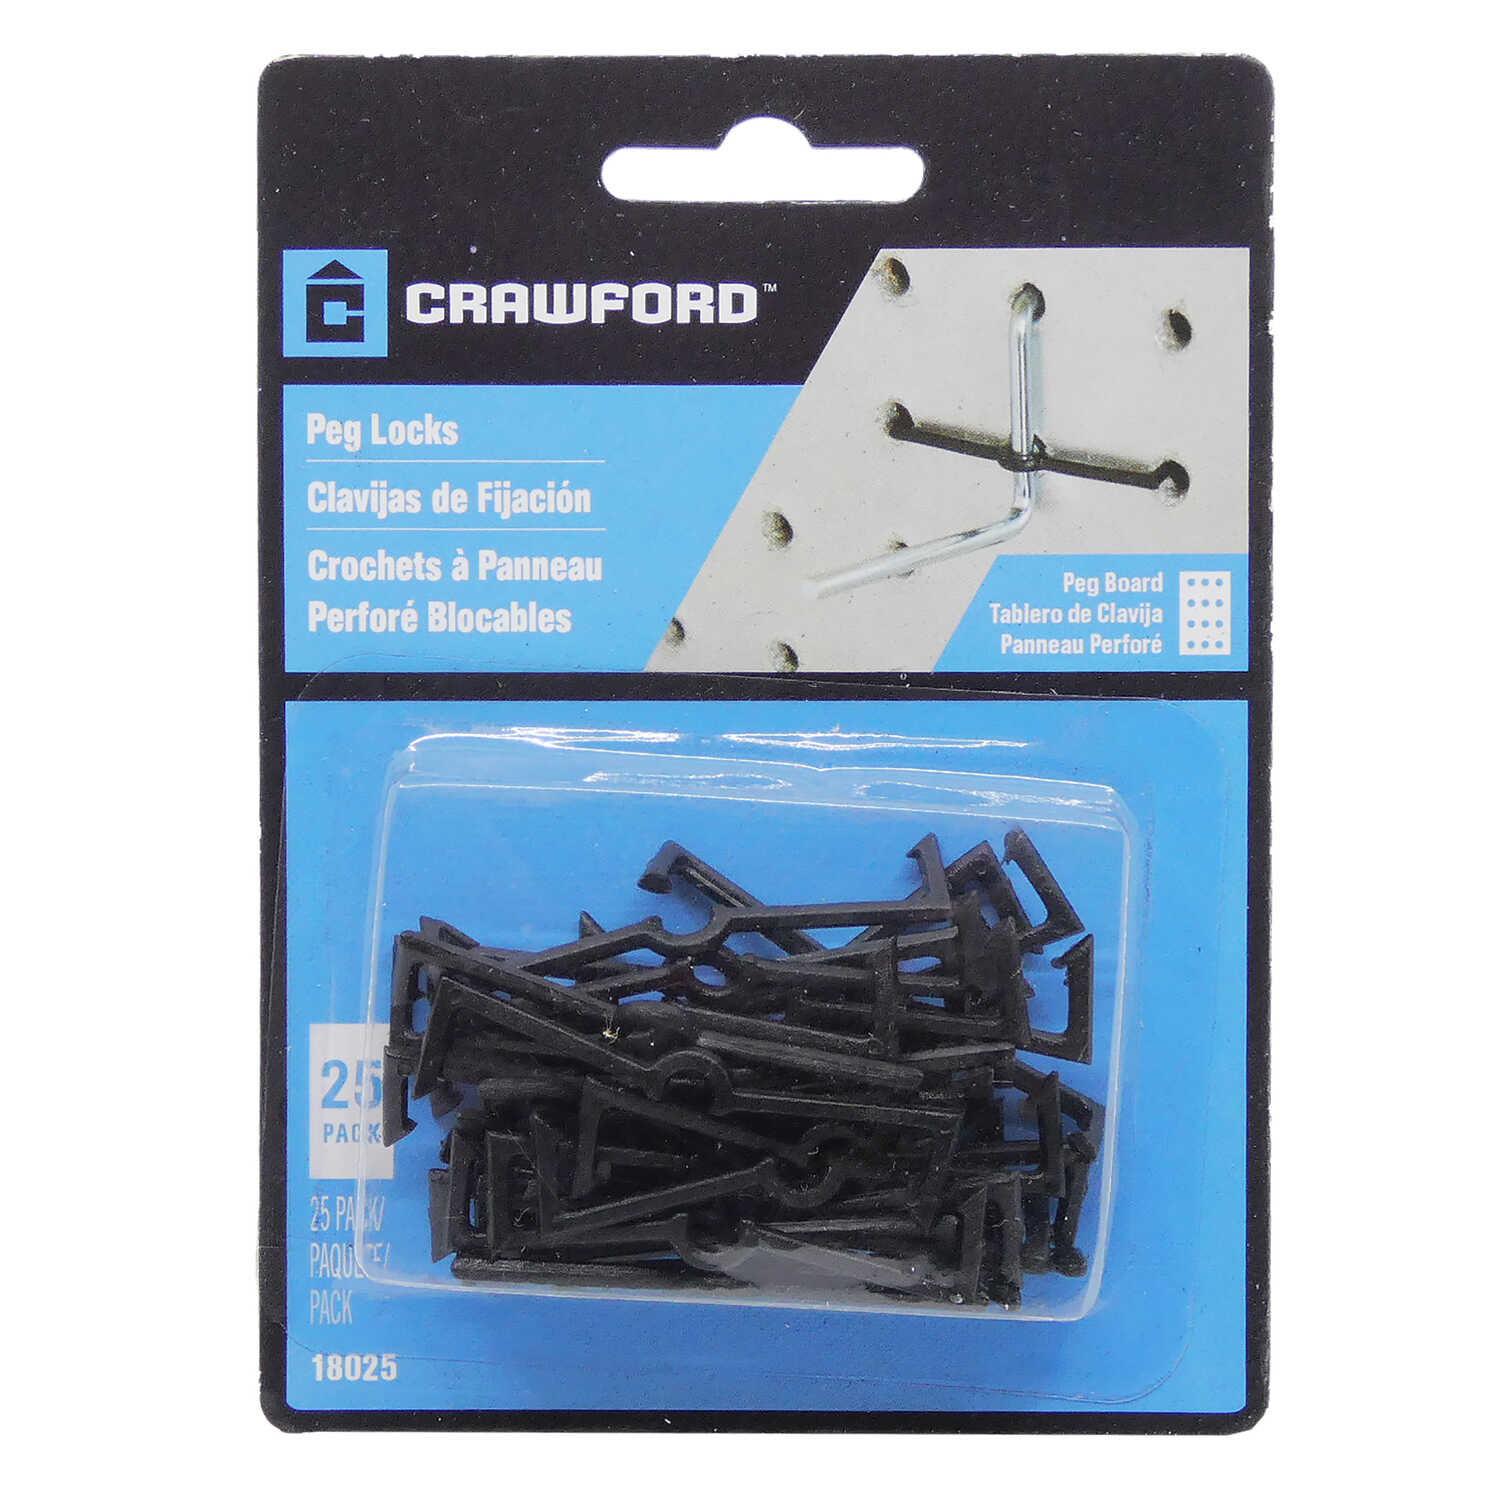 Crawford  Zinc Plated  Black  Plastic  0.05 in. Peg Hook Locks  25 pk